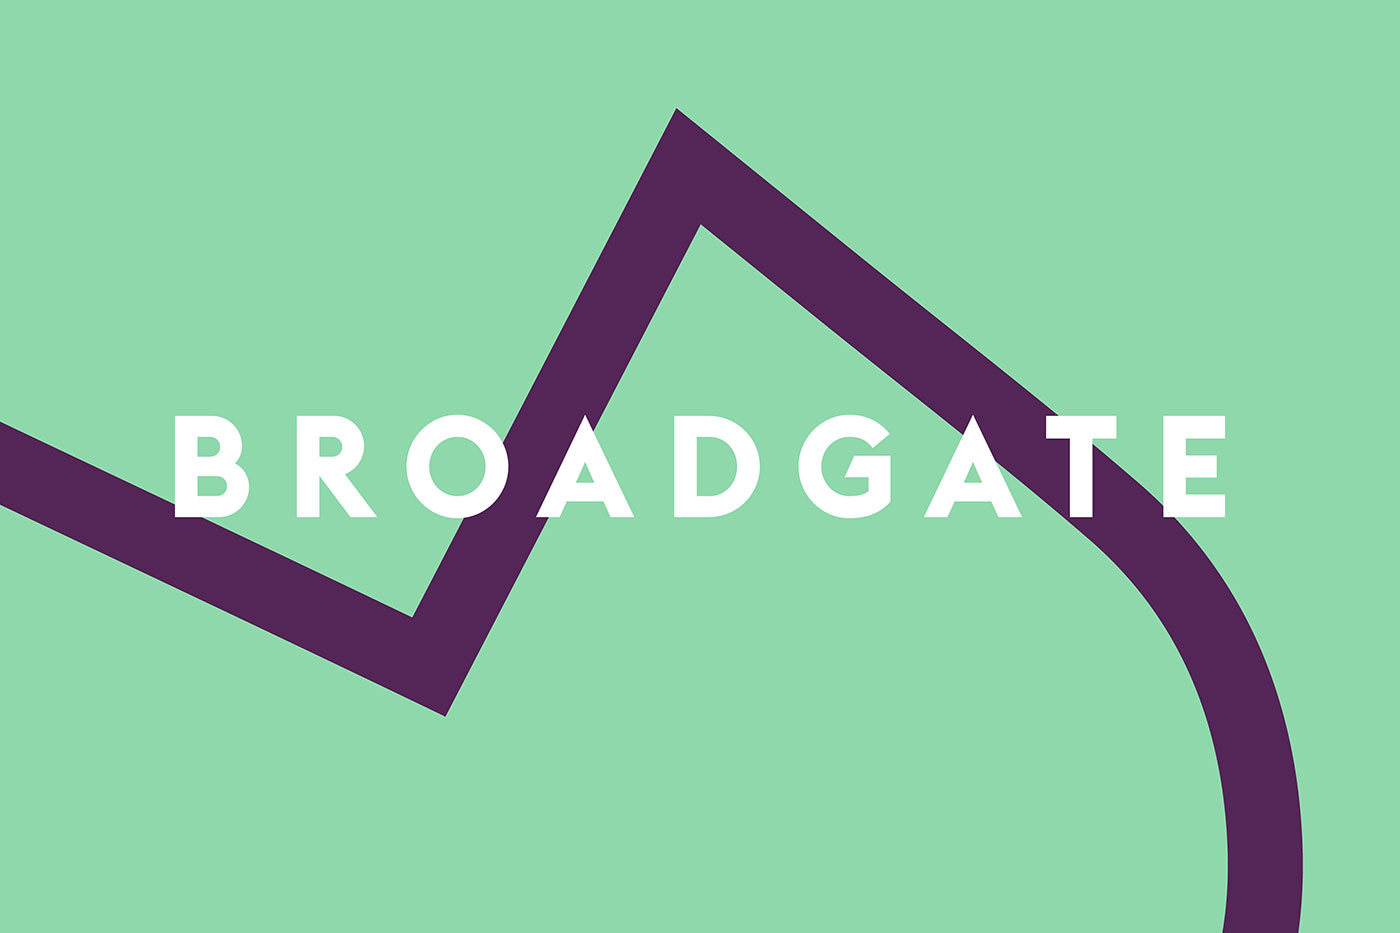 Broadgate logo and identity